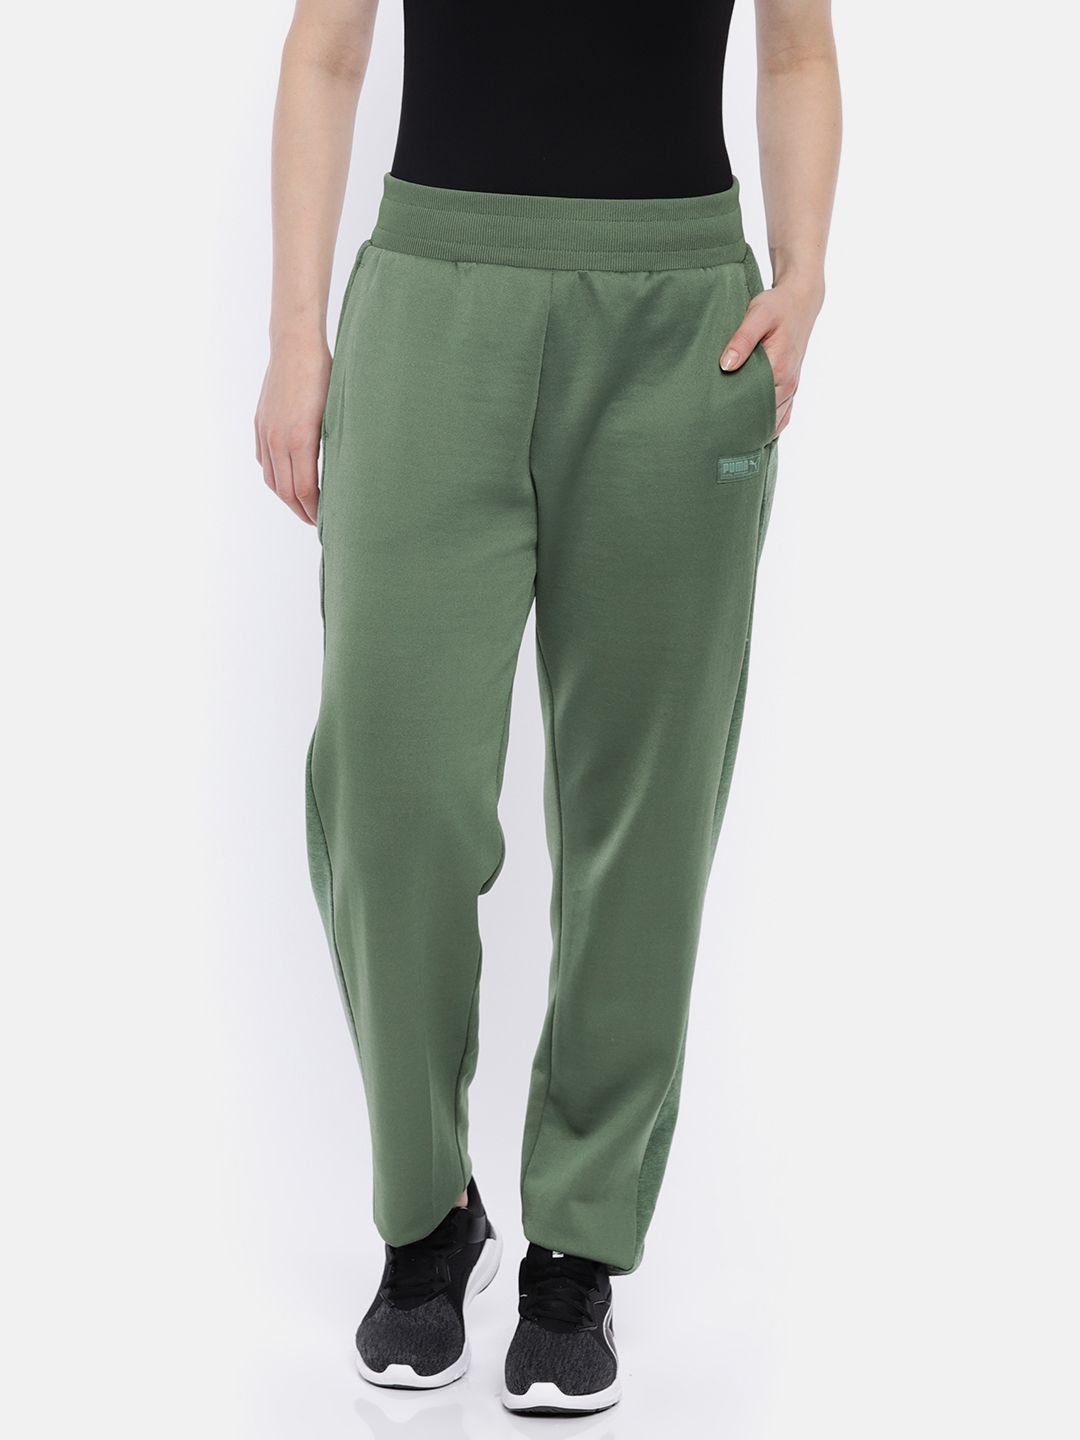 5641b6380d6c Buy Puma Women Green Solid FUSION Relaxed Fit Track Pants - Track ...